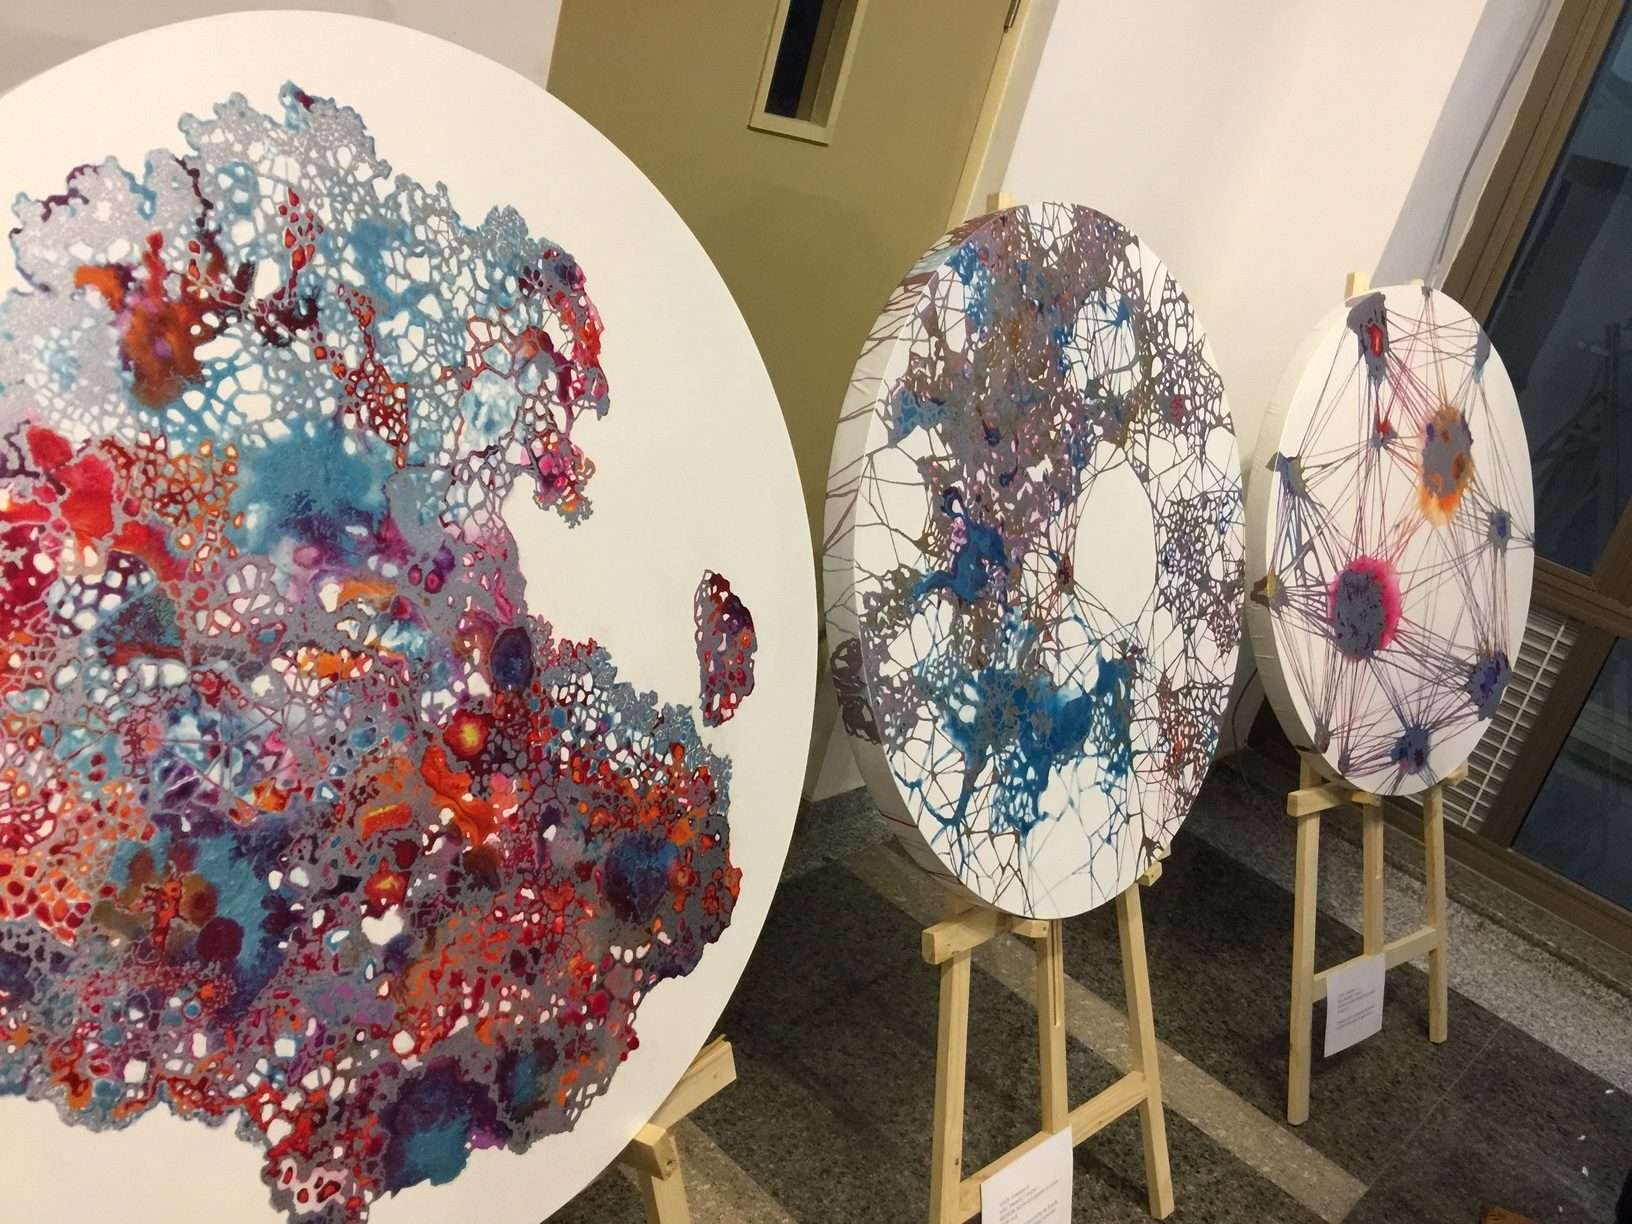 Contemporary Artist Dhara Mehrotra's installations based on fungal networks she observed as part of NCBS Artists in Residence Program:  Gosamer